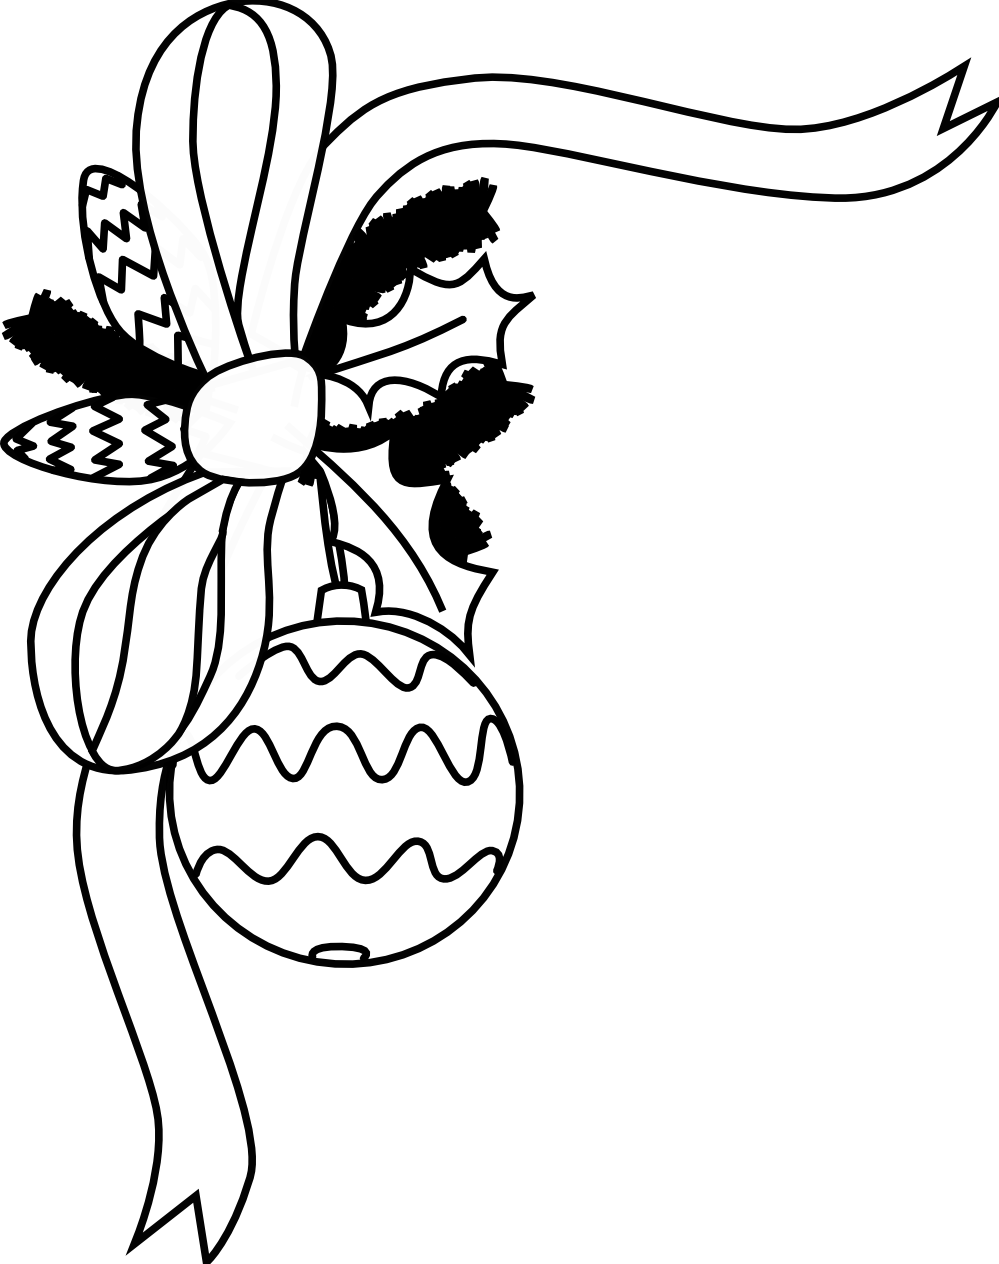 Vintage Christmas Clip Art Black And White